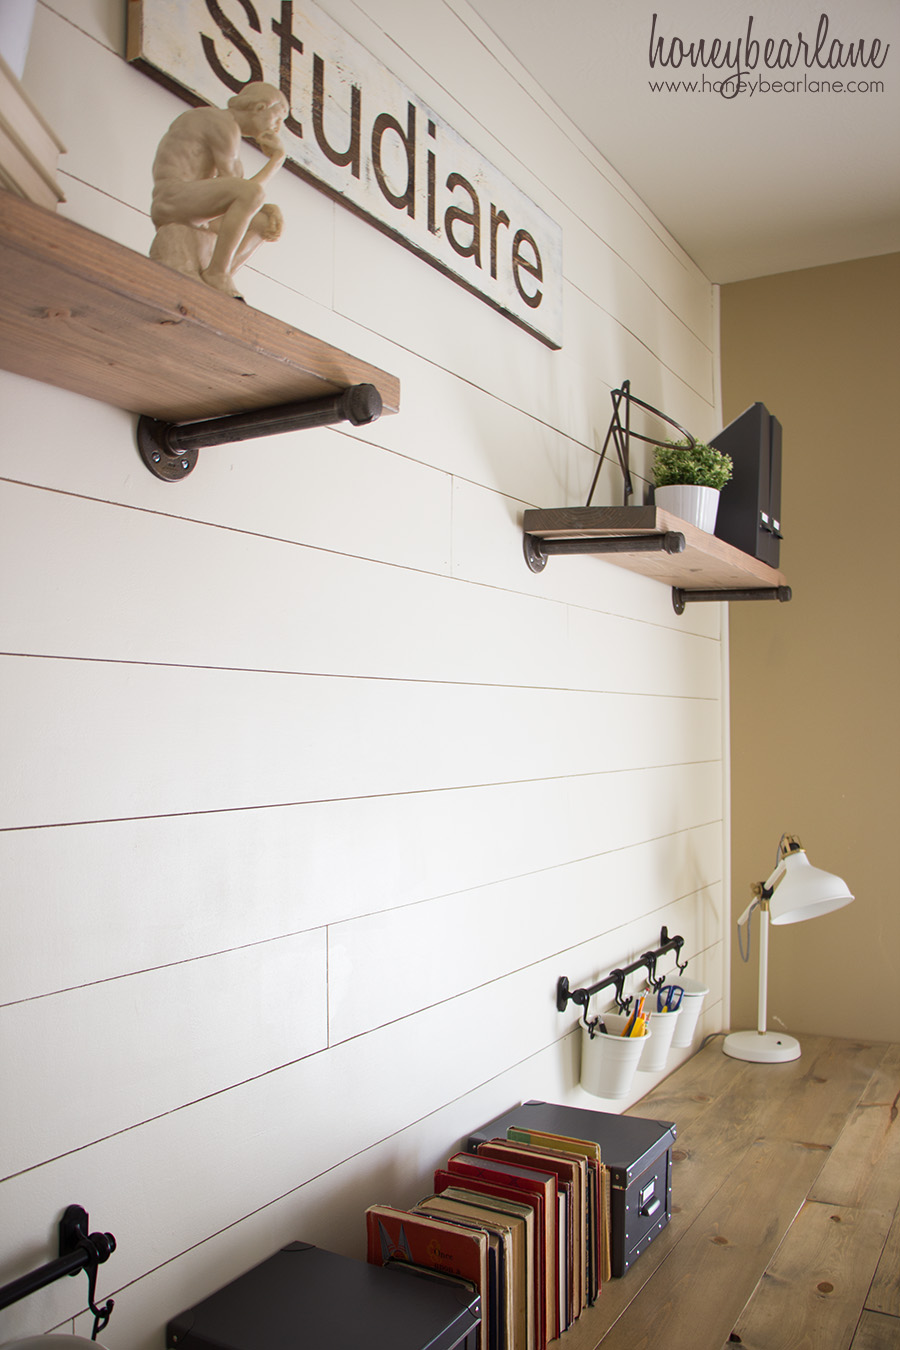 Finest Shiplap Wall for Under $50 - Honeybear Lane QZ66